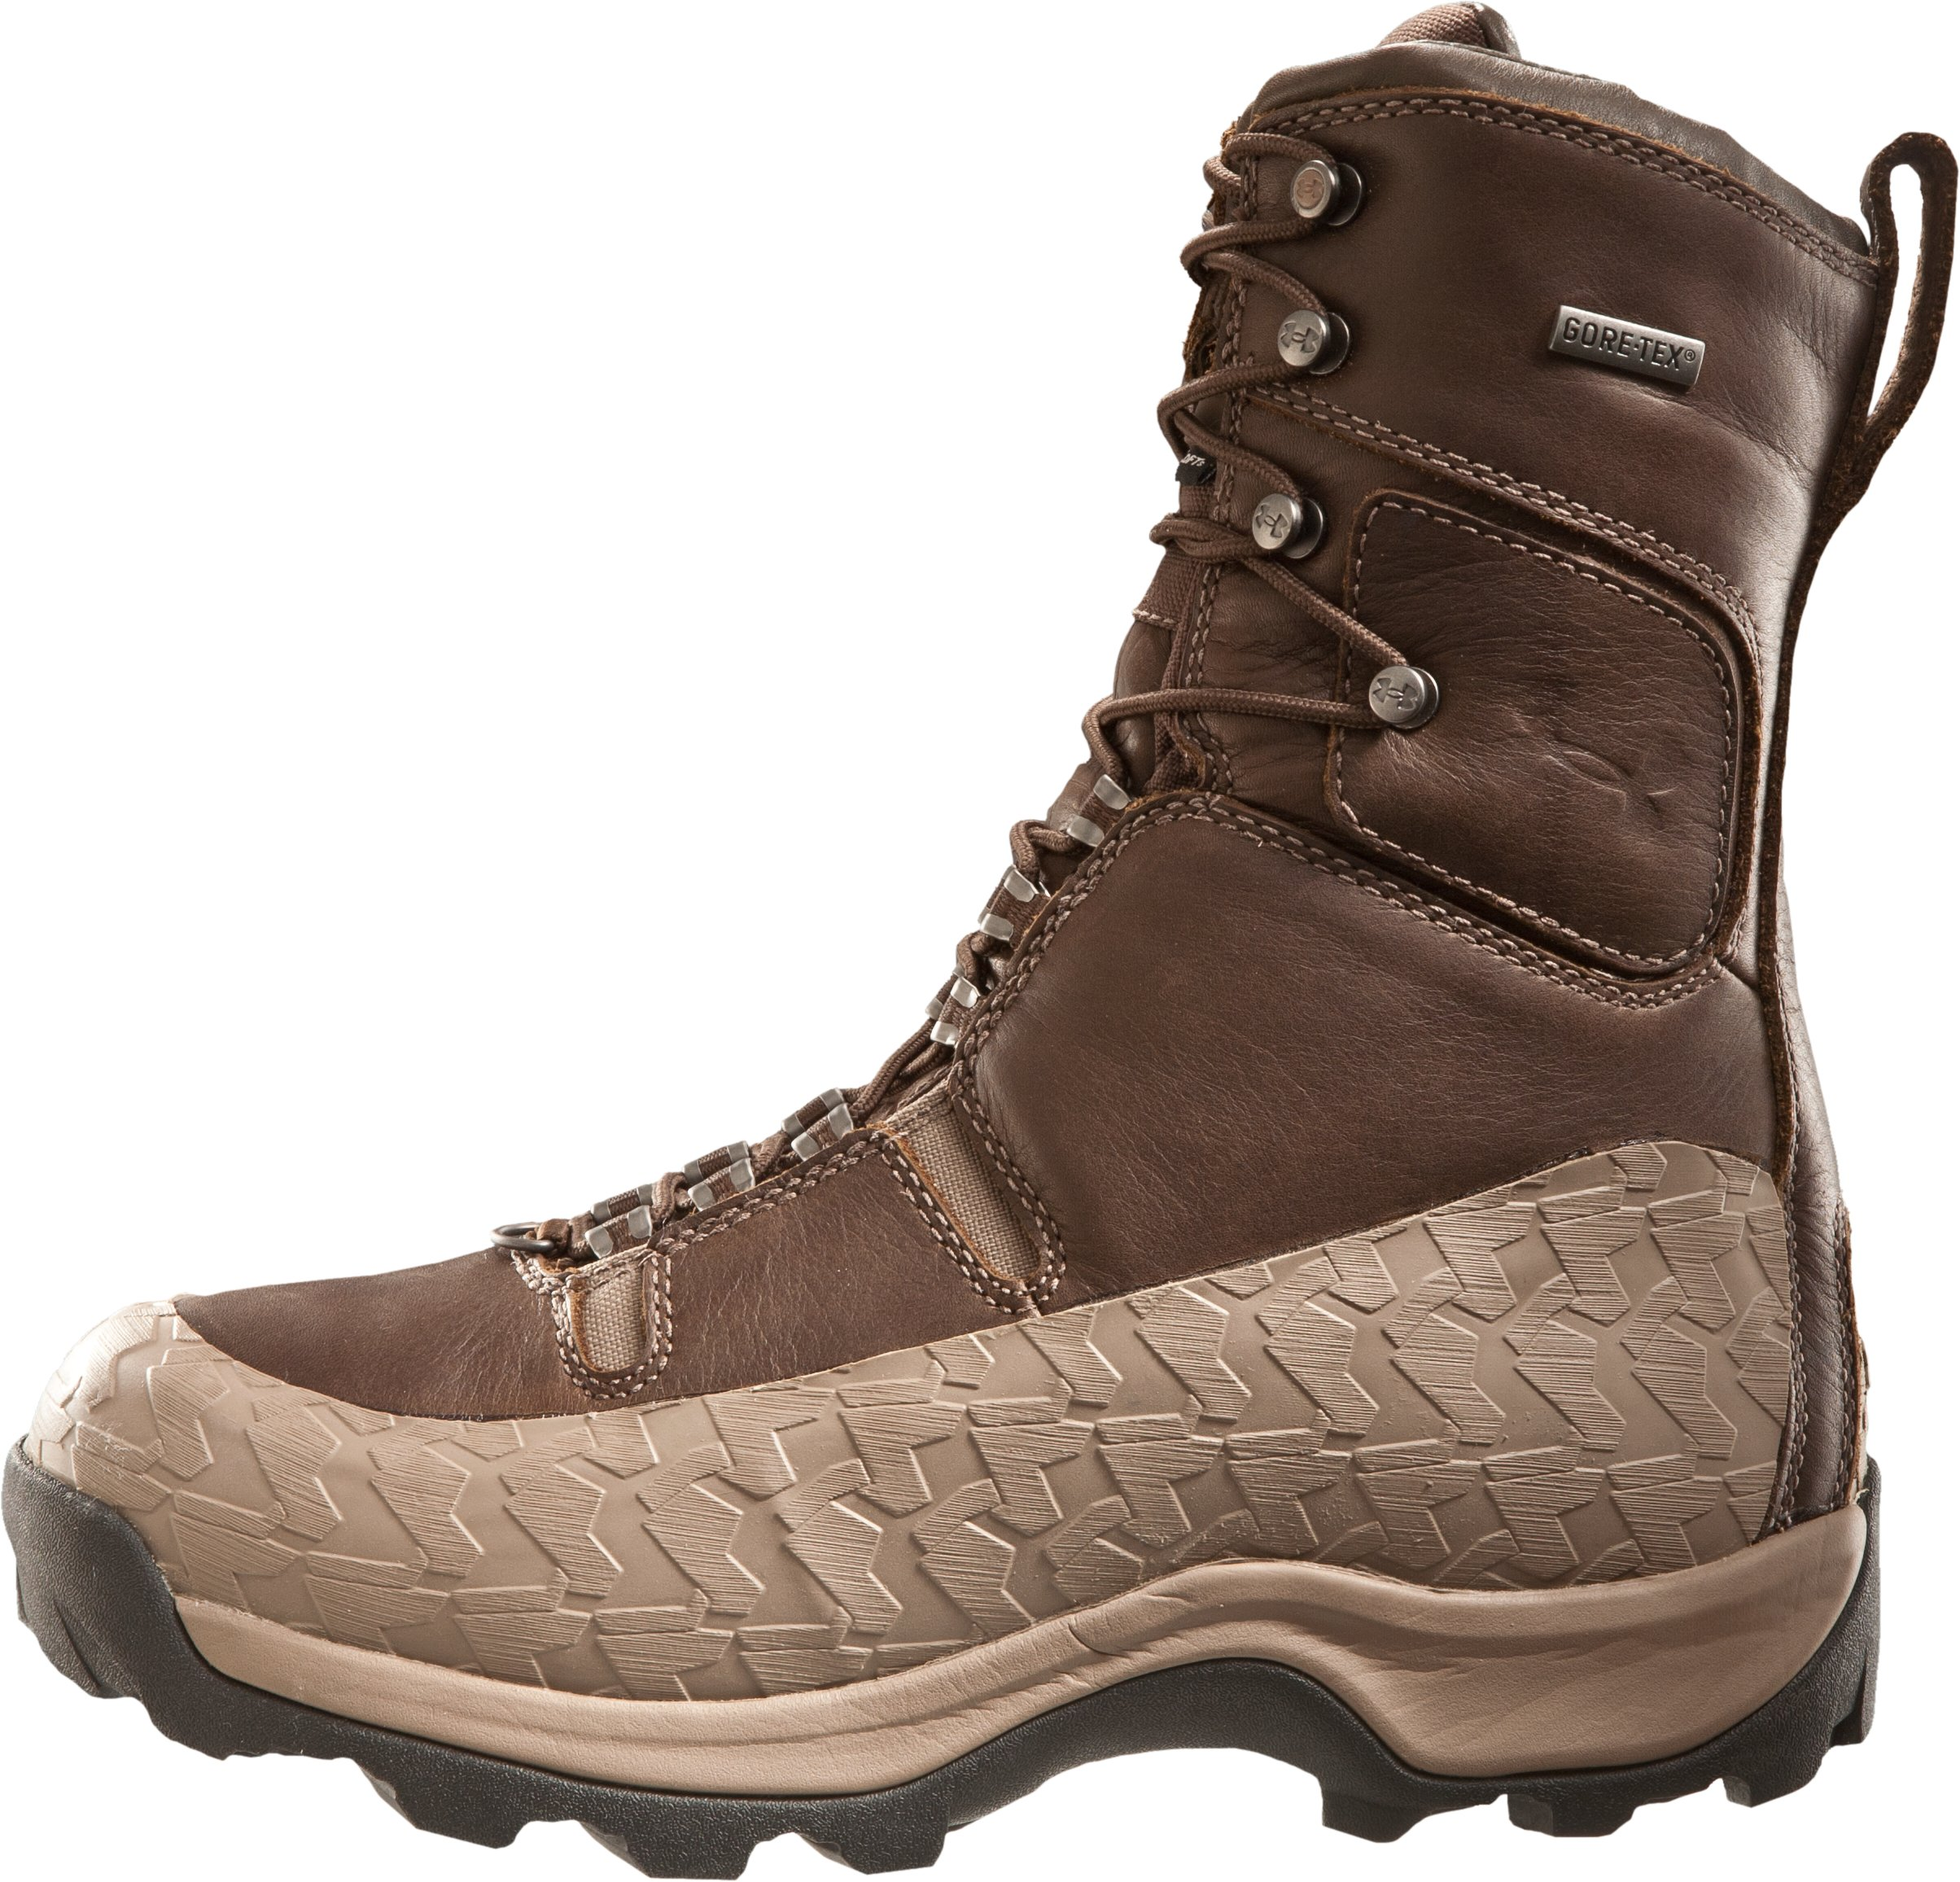 "Men's UA Siberia 10"" Hunting Boots, Timber, zoomed image"